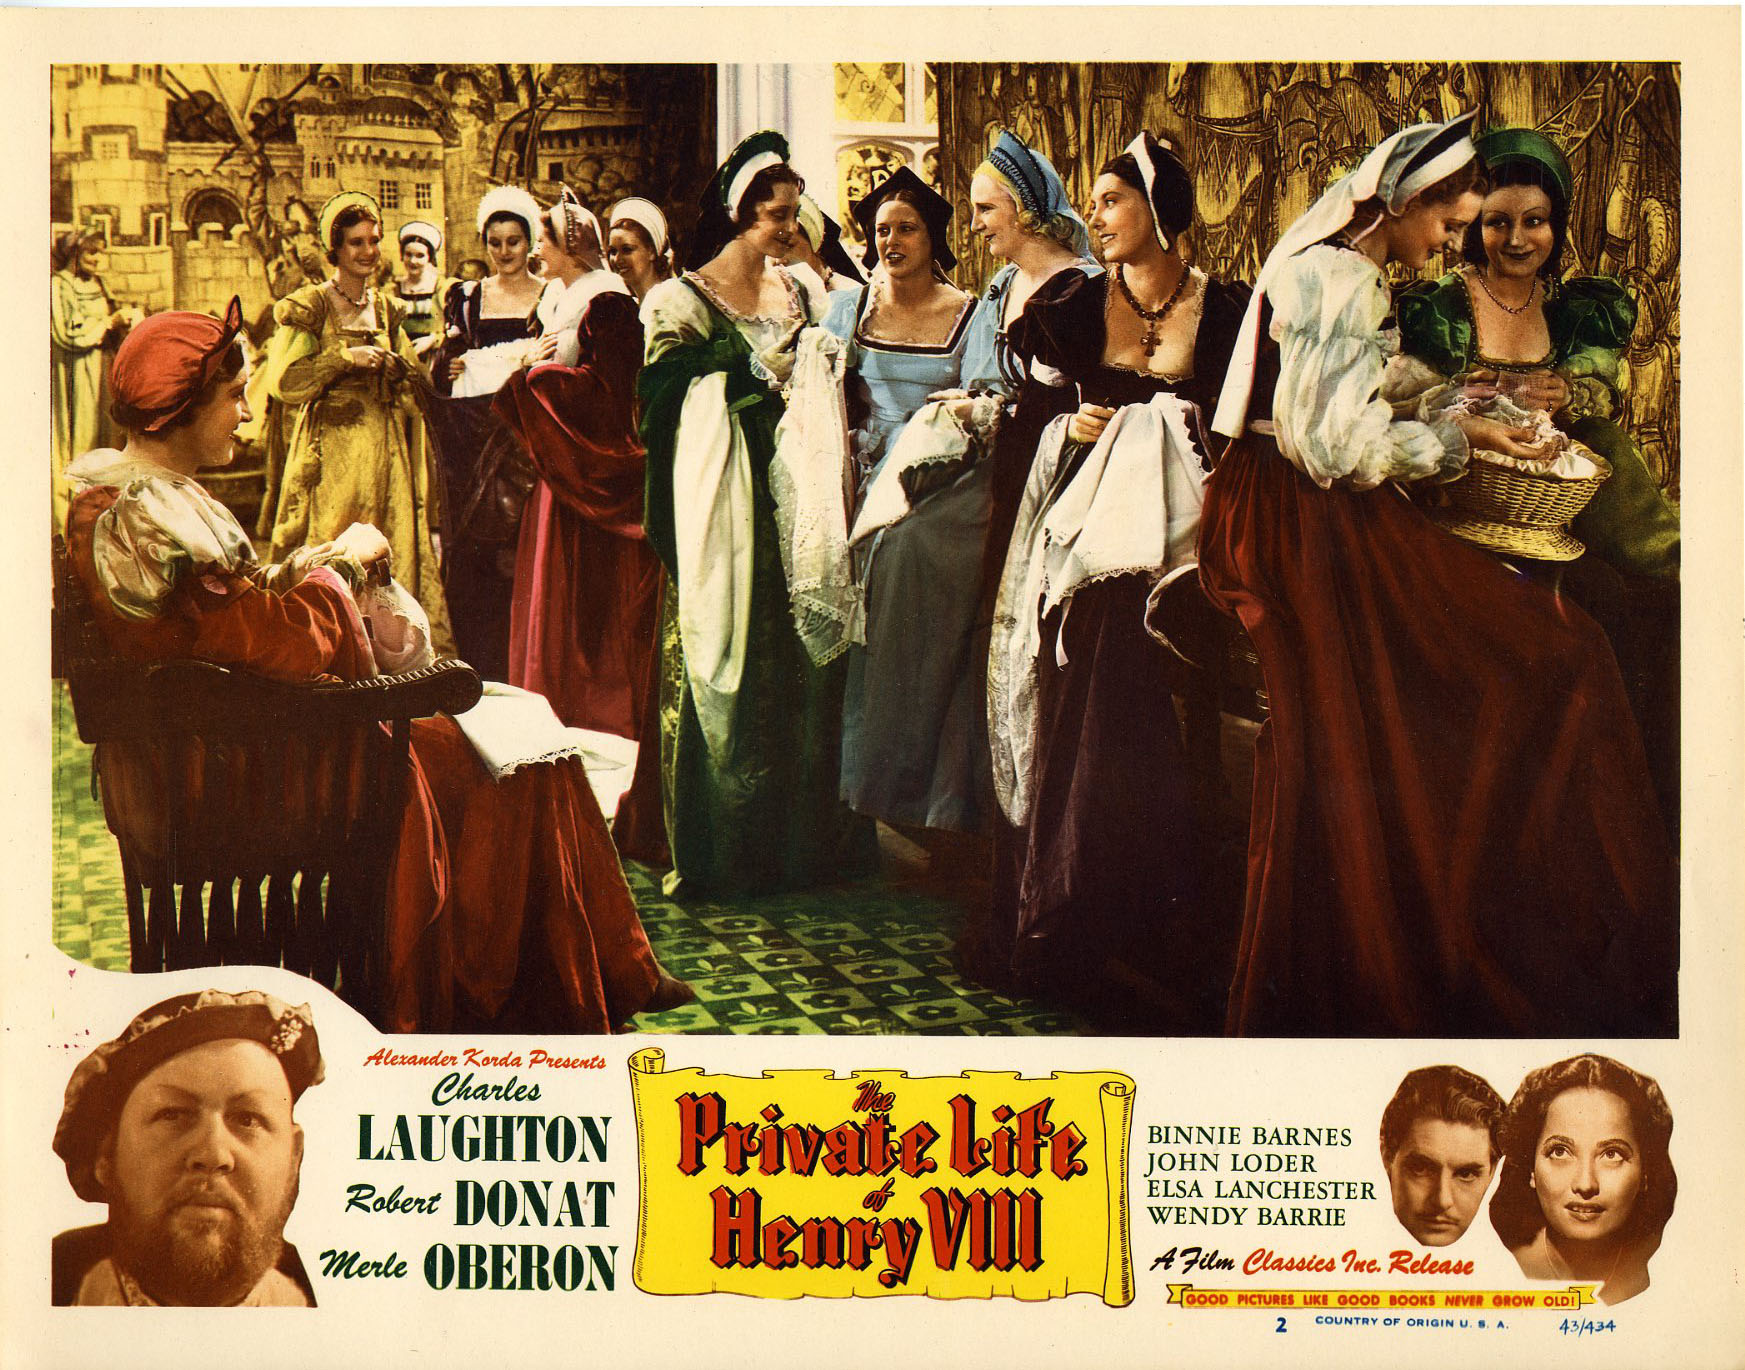 Charles Laughton, Robert Donat, Annie Esmond, Judy Kelly, Merle Oberon, and Lady Tree in The Private Life of Henry VIII (1933)